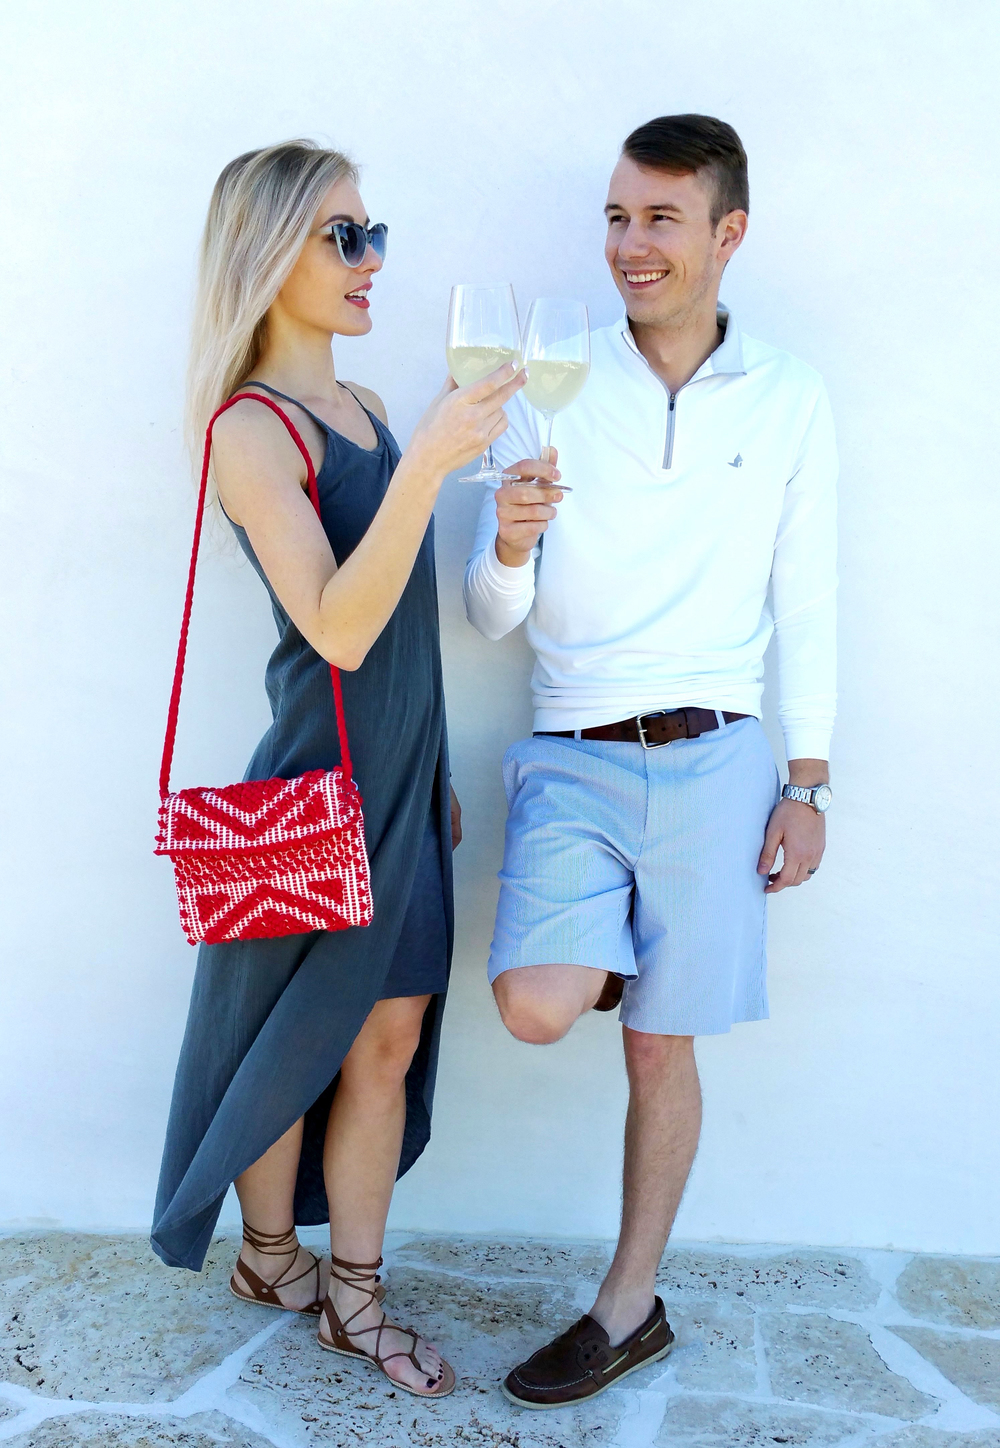 Marta is wearing gray high-low dress by Stateside, red hand bag by Antonello, sandals LeSwim & Krewe du Optic sunnies.   Adam is wearing Alys Beach logo popover & shorts -both by Peter Millar